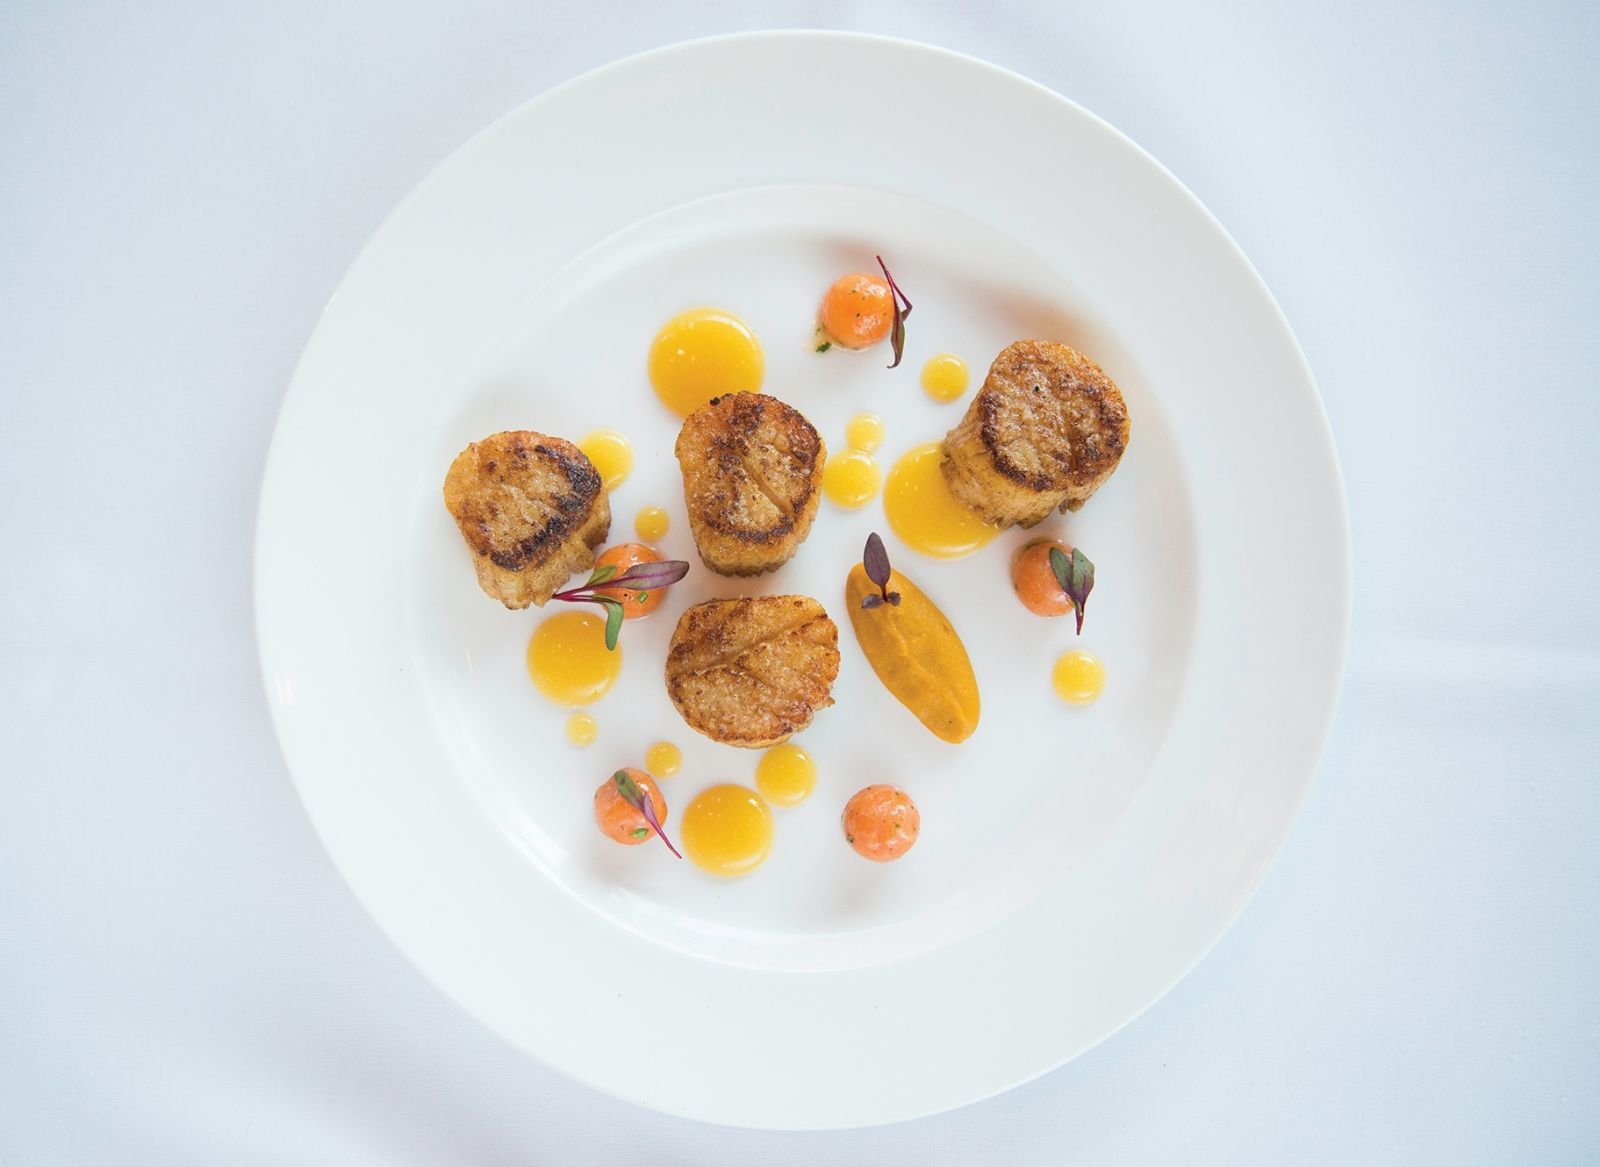 801 Fish Lures A Big Catch New Bedford Scallops By Chef Joe West For 801 Fish 435 Magazine March 2015 Scallop Dishes Food Dishes